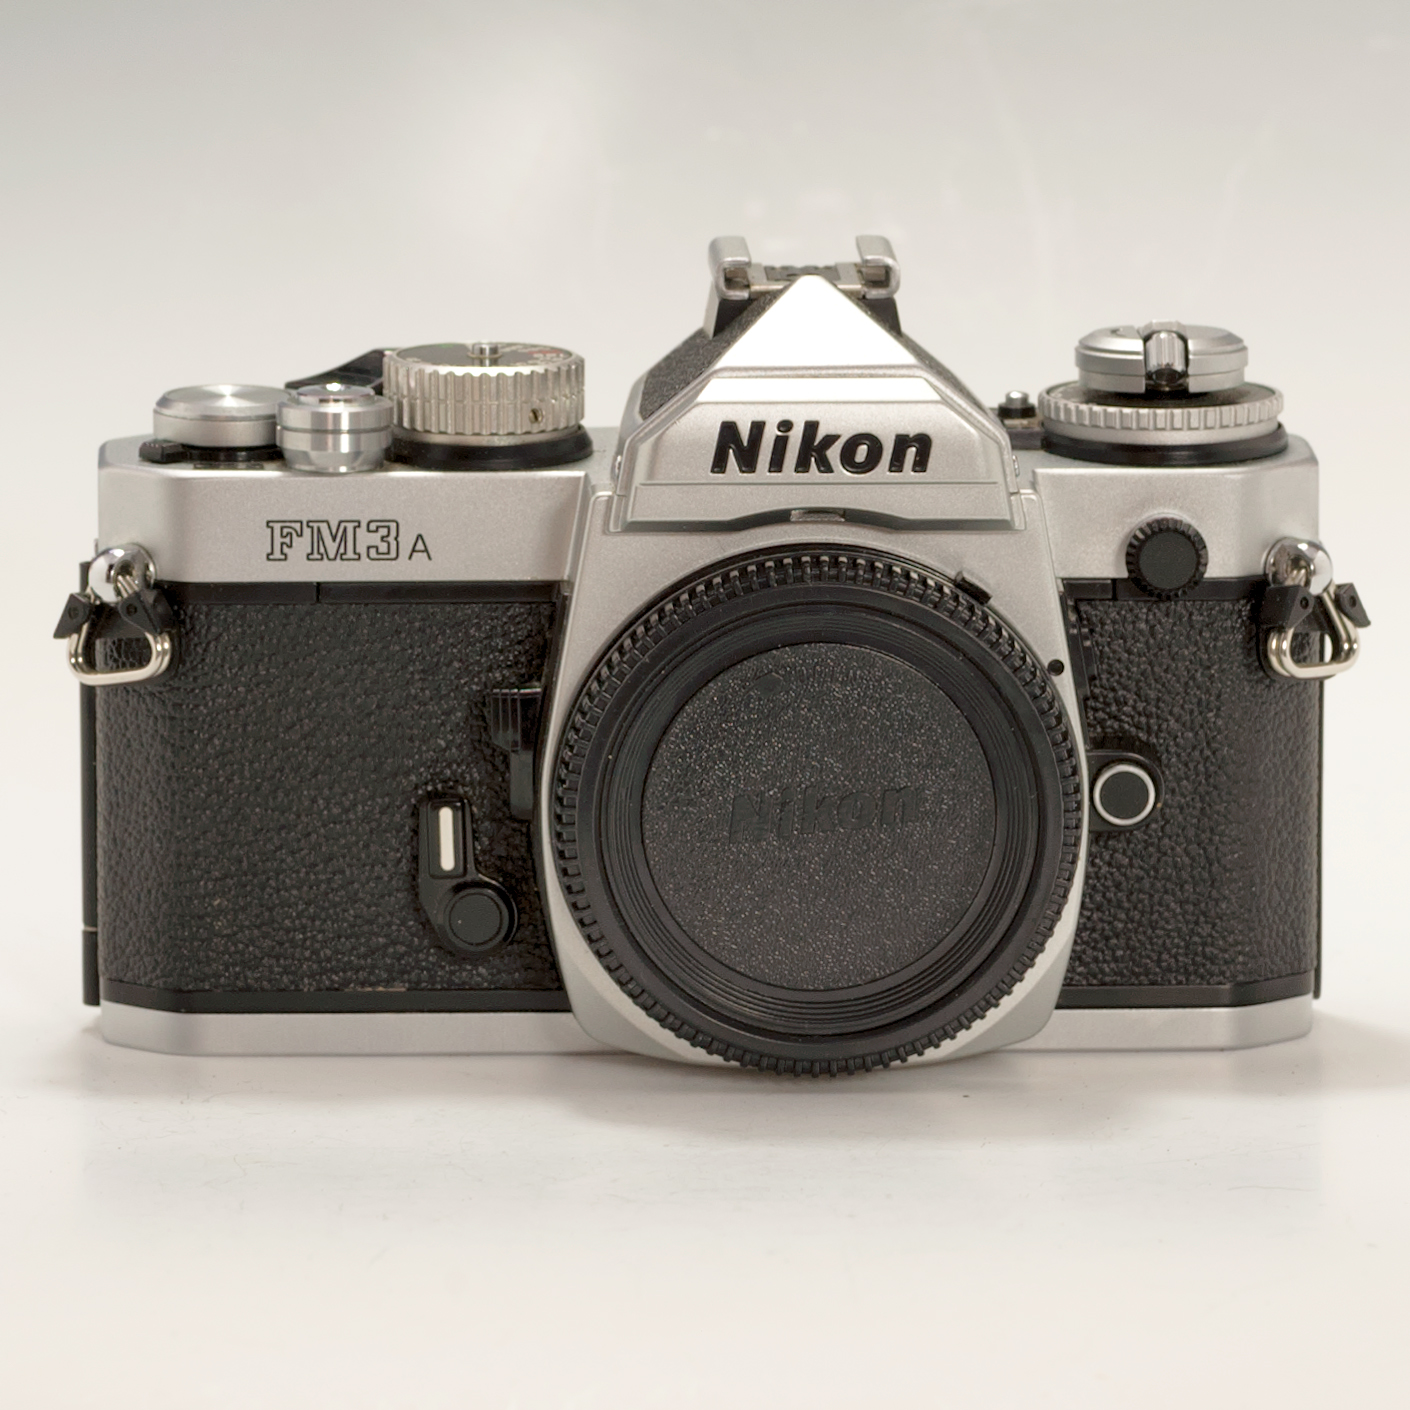 Film Camera Nikon Fm3a 35mm Slr Film Camera Body Only Chrome